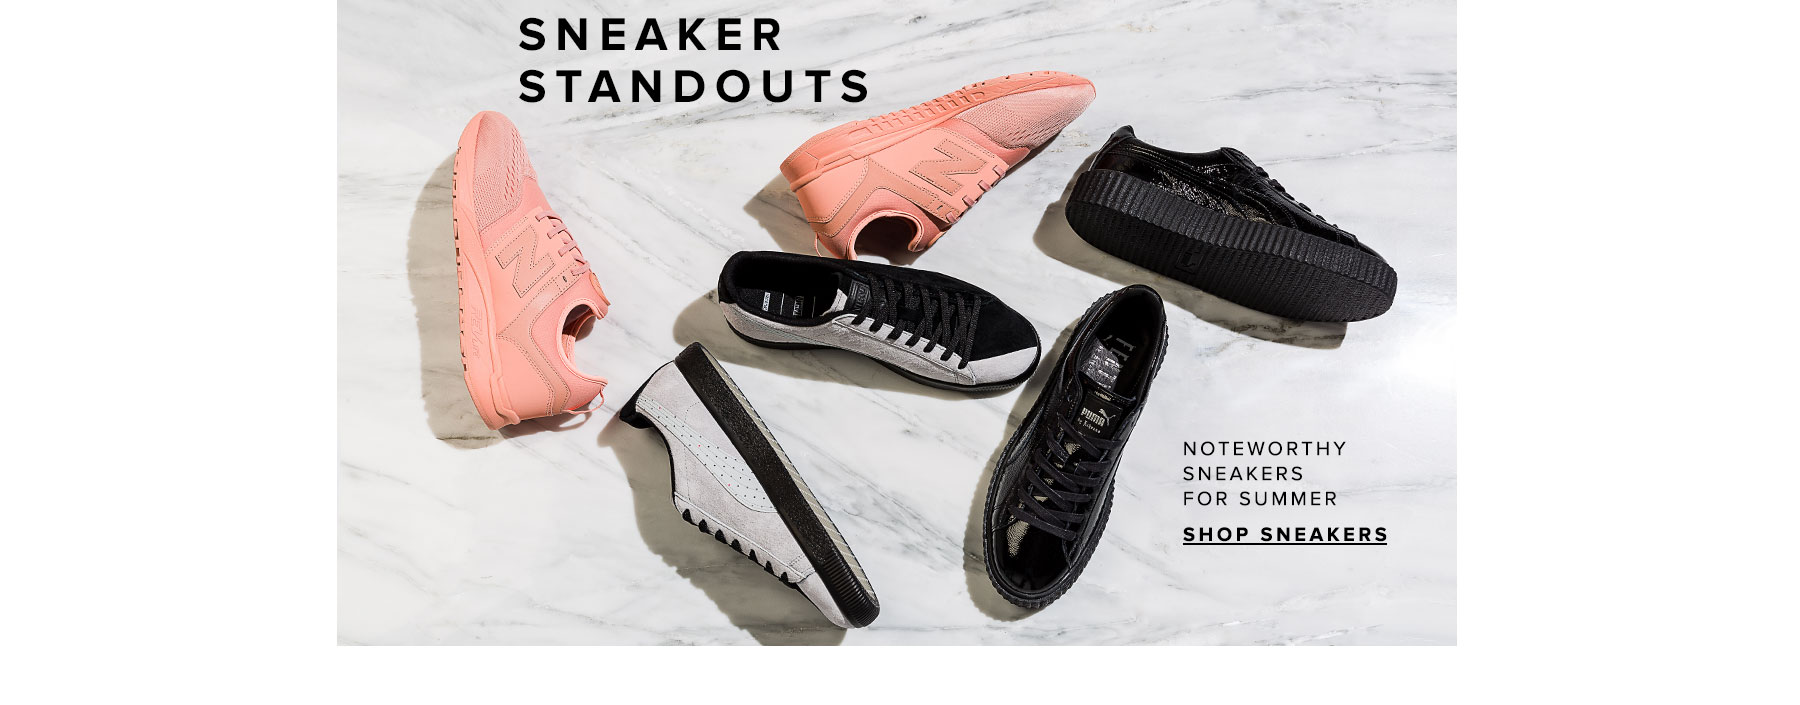 Sneaker Standouts. Noteworthy sneakers for summer. Shop Sneakers.